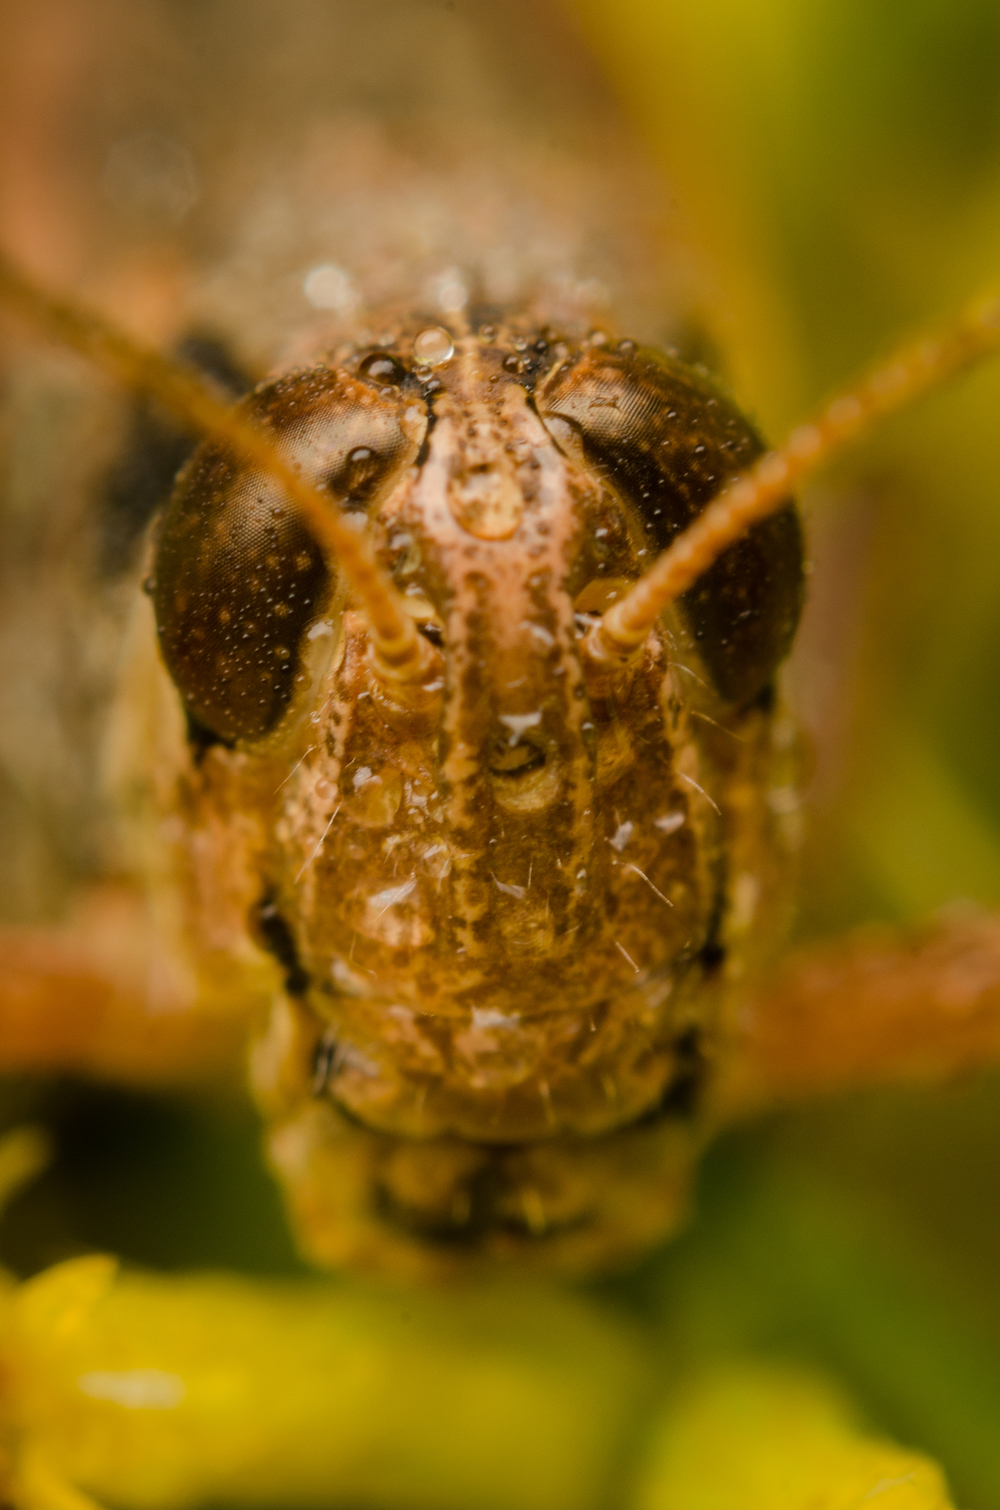 Grasshopper  Nikon D7000 ISO 200 f/16 1/125 sec. Nikkor 50mm f/1.4 reversed with BR-2 Reversing Ring, off-camera flash with modified soft box.